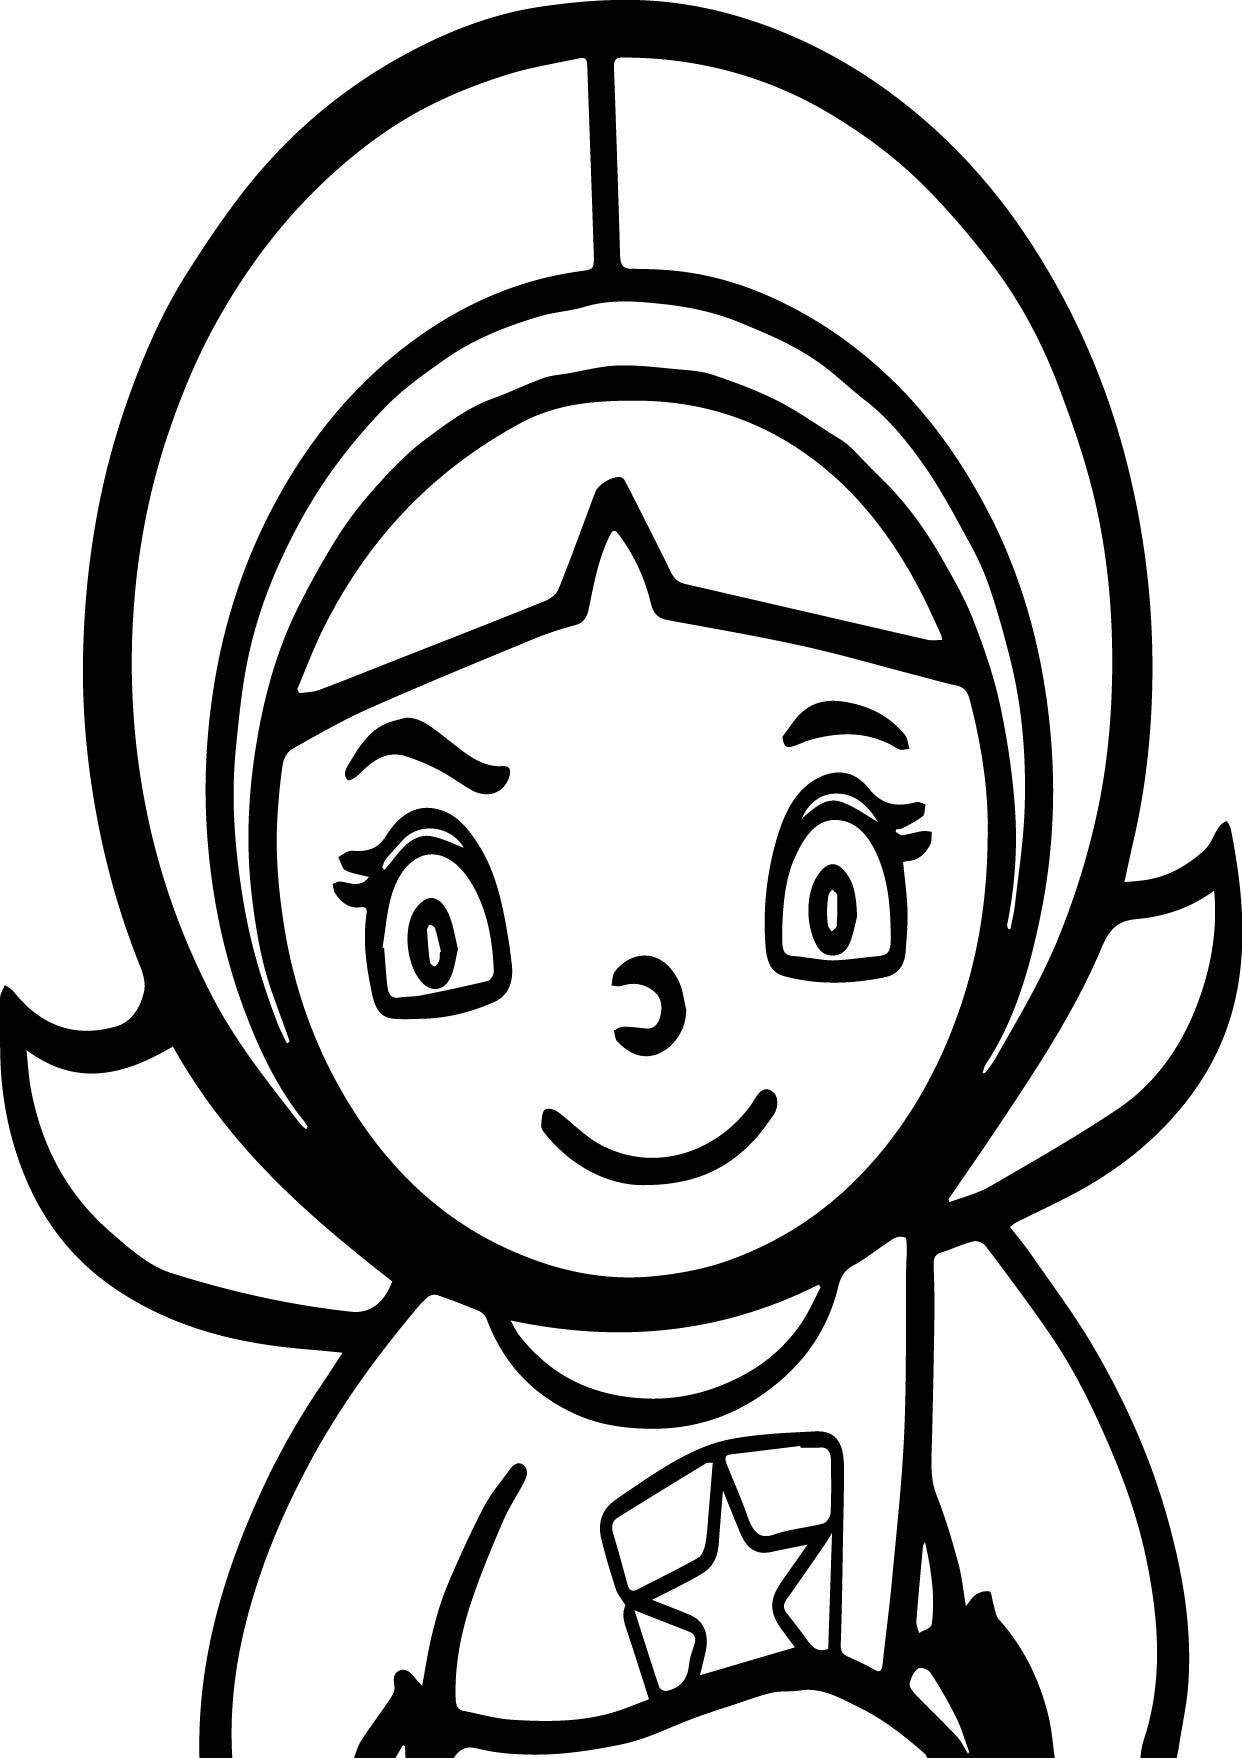 pbs coloring pages # 42